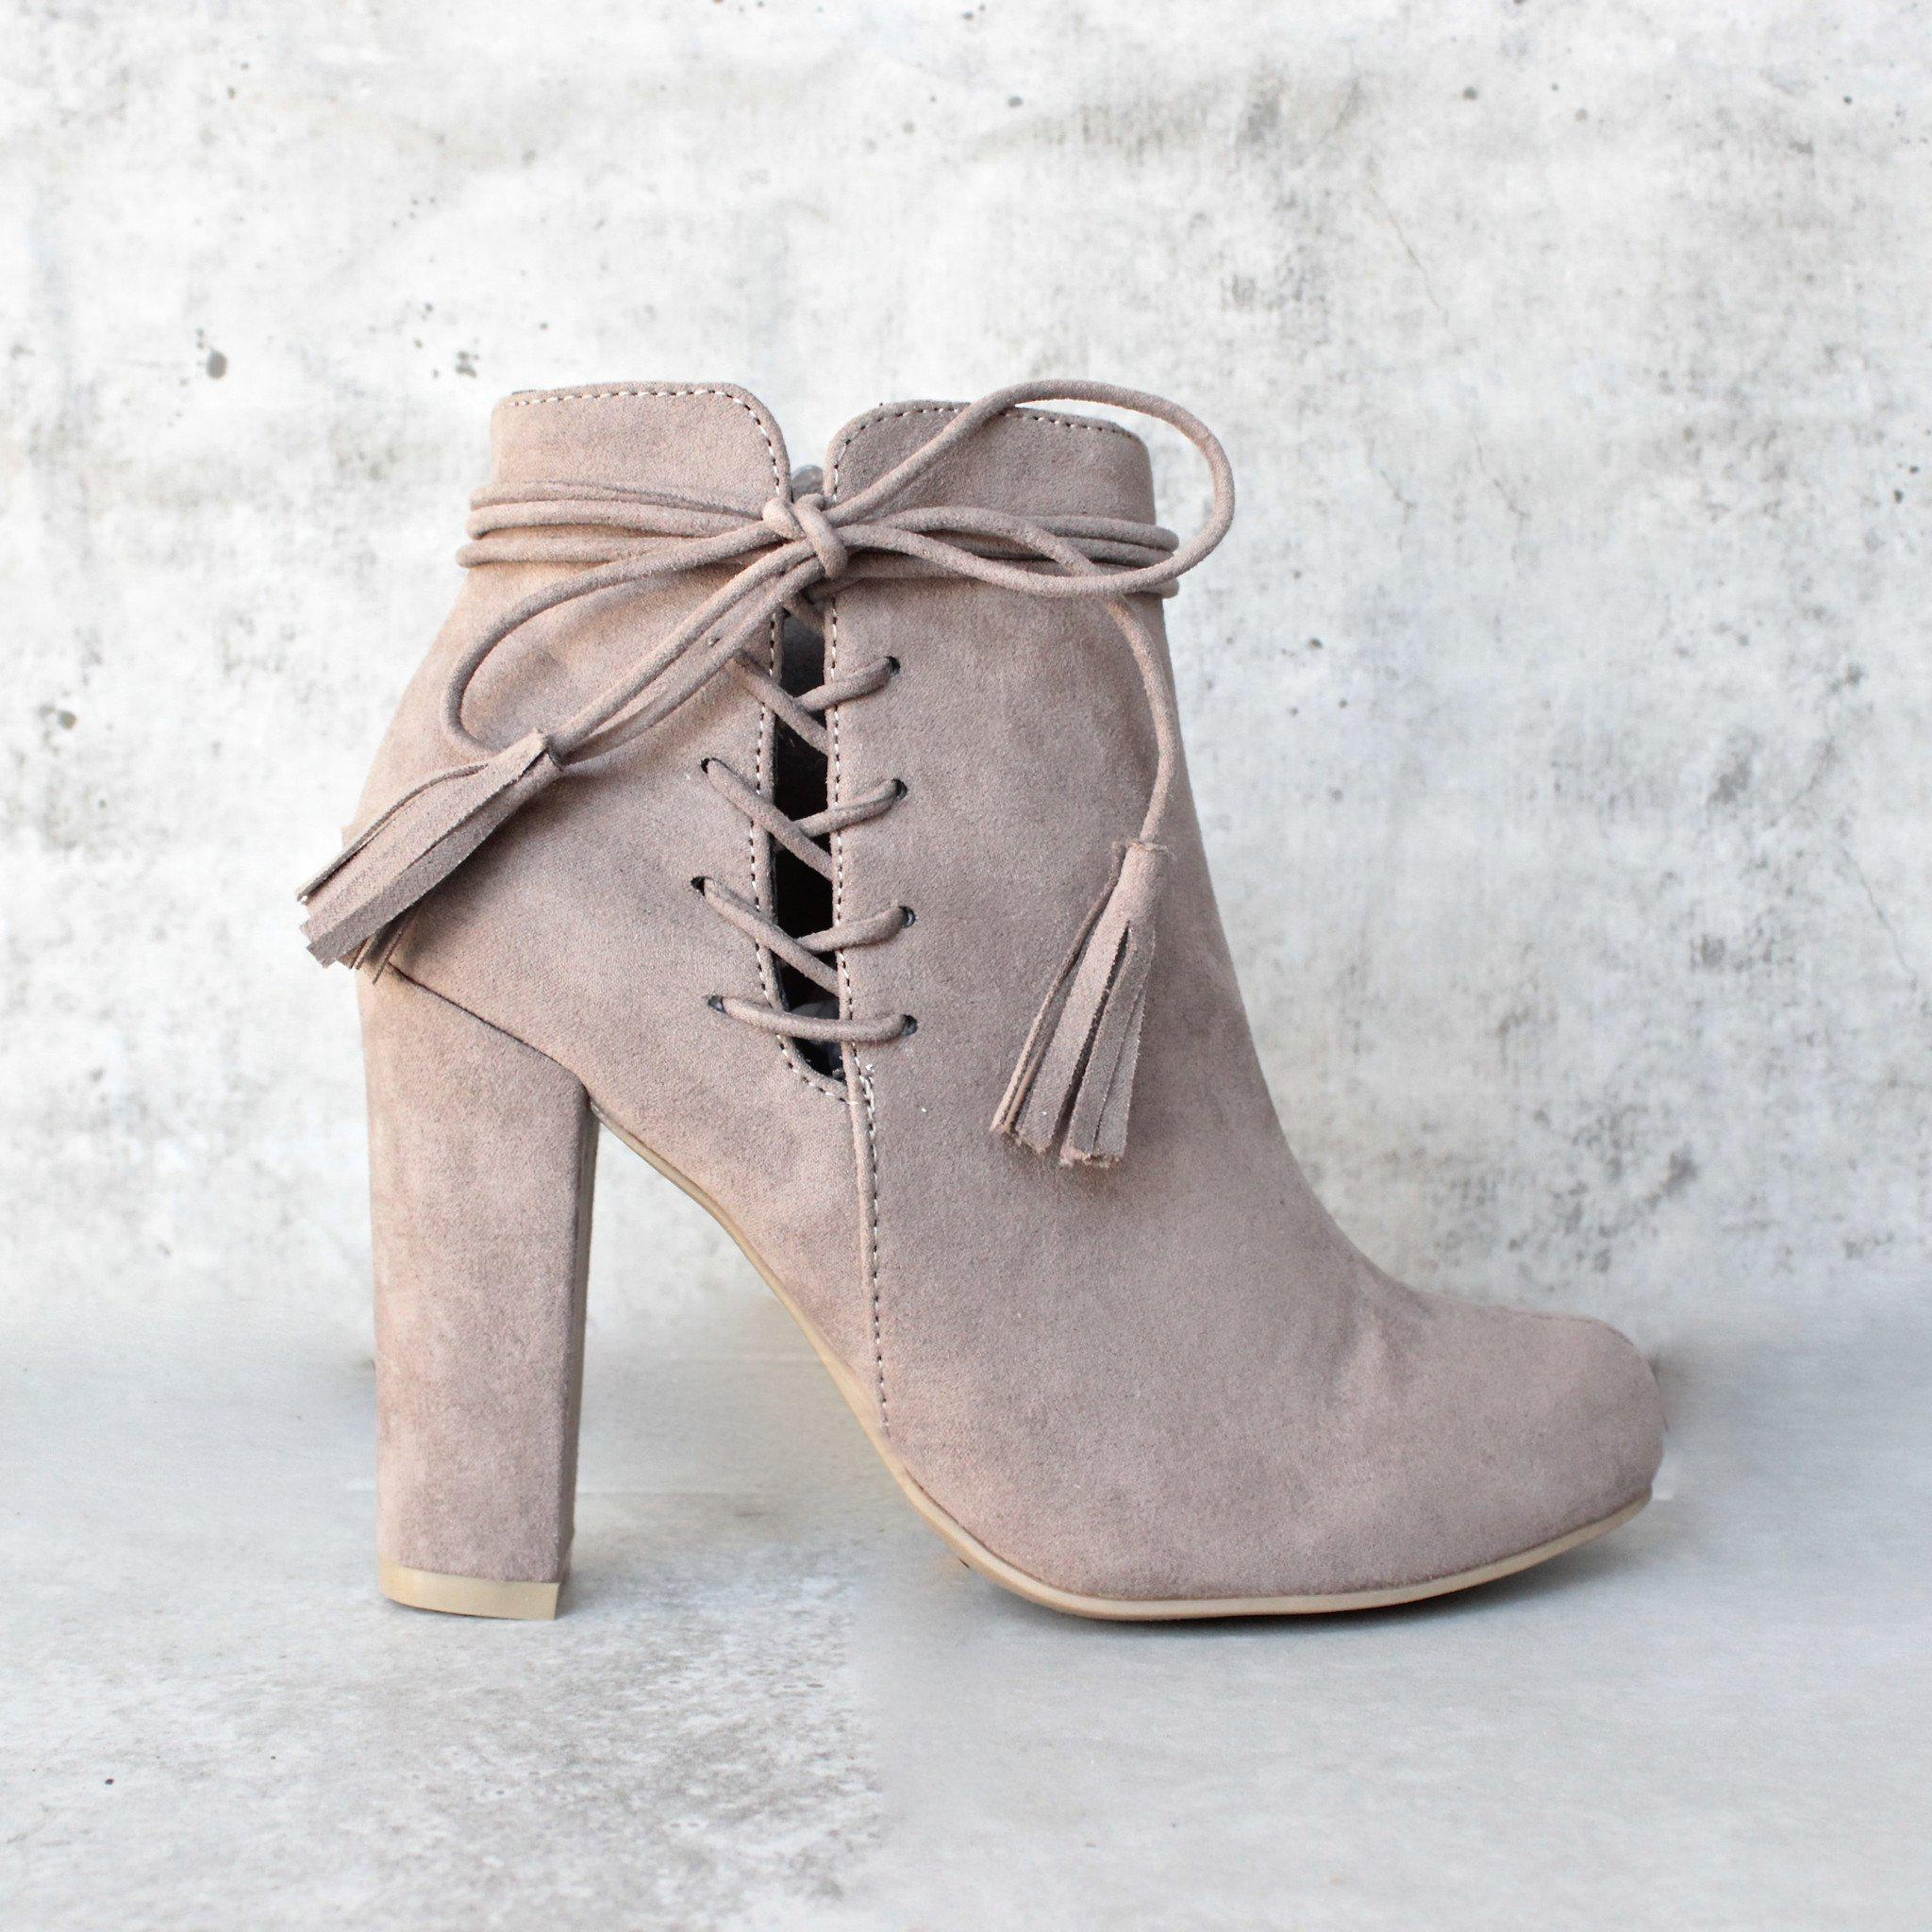 Image of tassel lace up side ankle boots - taupe